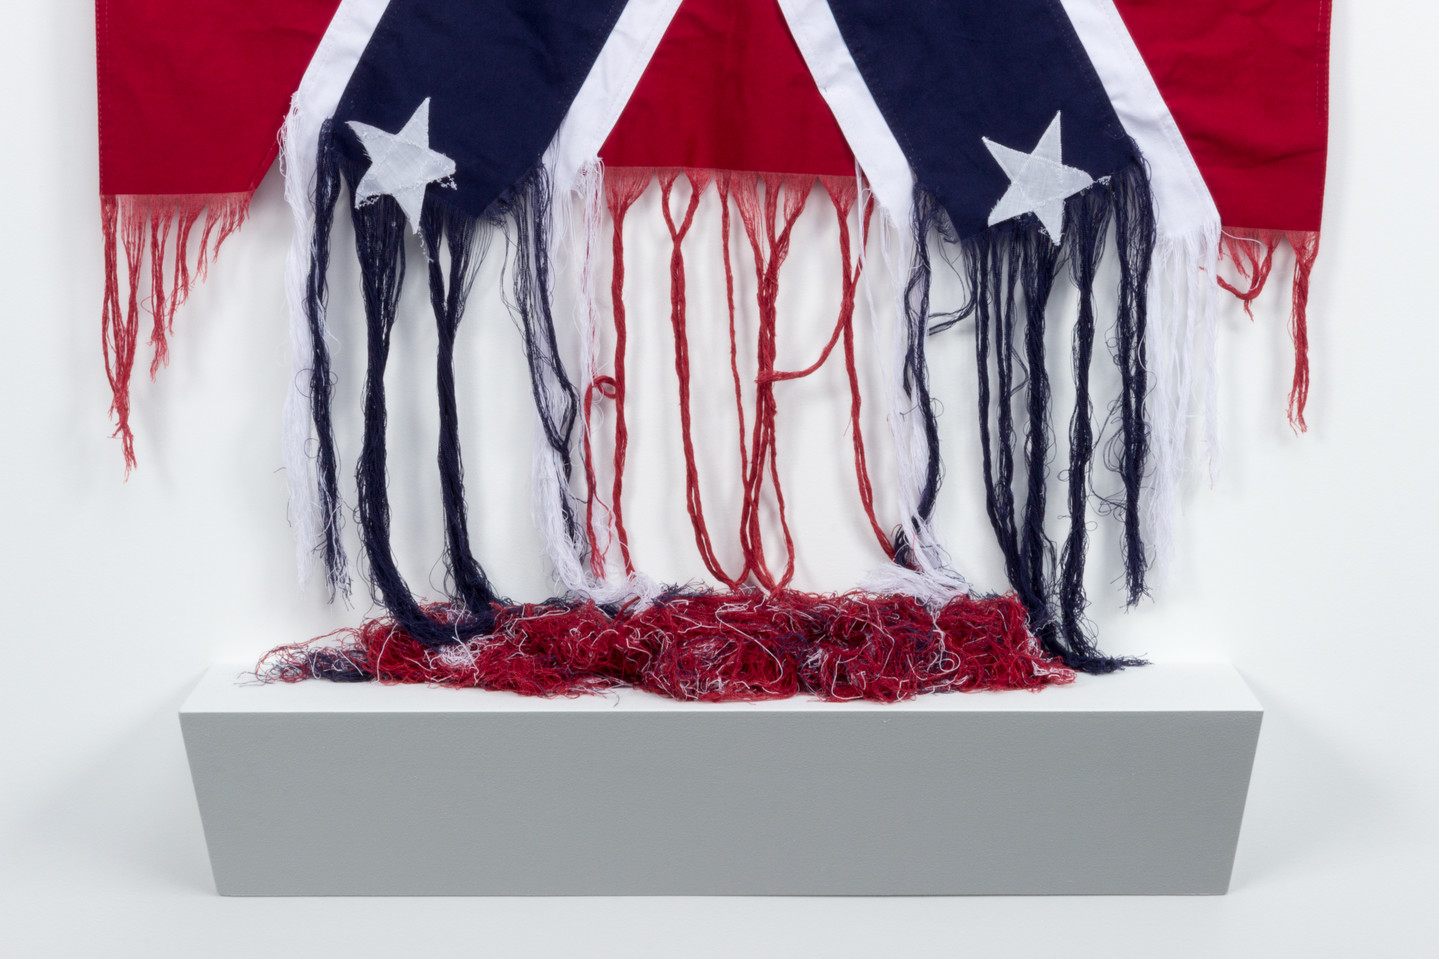 The bottom of an American Confederate battle flag, which has been unraveled. The red, white, and blue threads hang loose, and pool onto a shelf below.